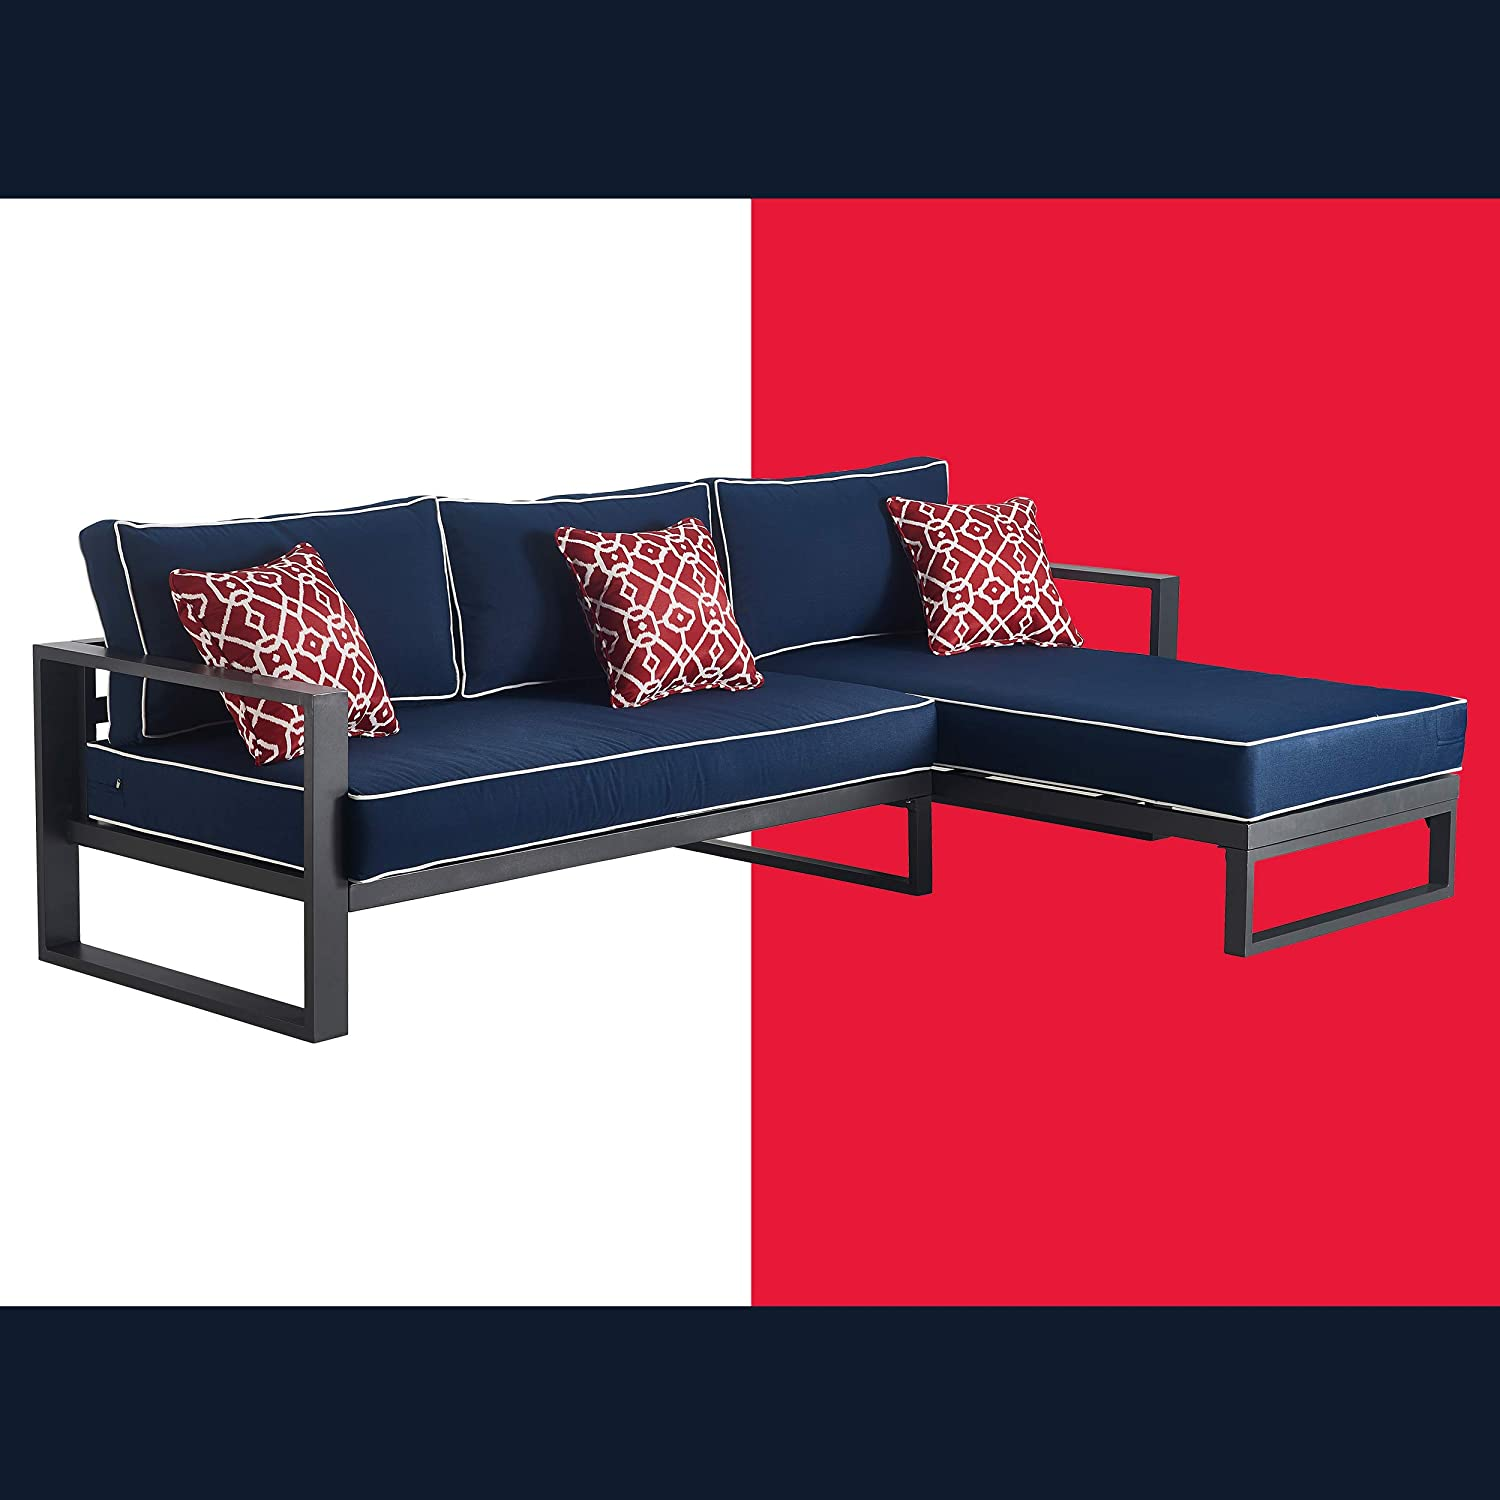 Tommy Hilfiger ODSO10011A Monterey Modern Patio Outdoor Furniture Collection, Weather Resistant, Metal Frame, Sectional Sofa, Navy Blue & Dark Gray